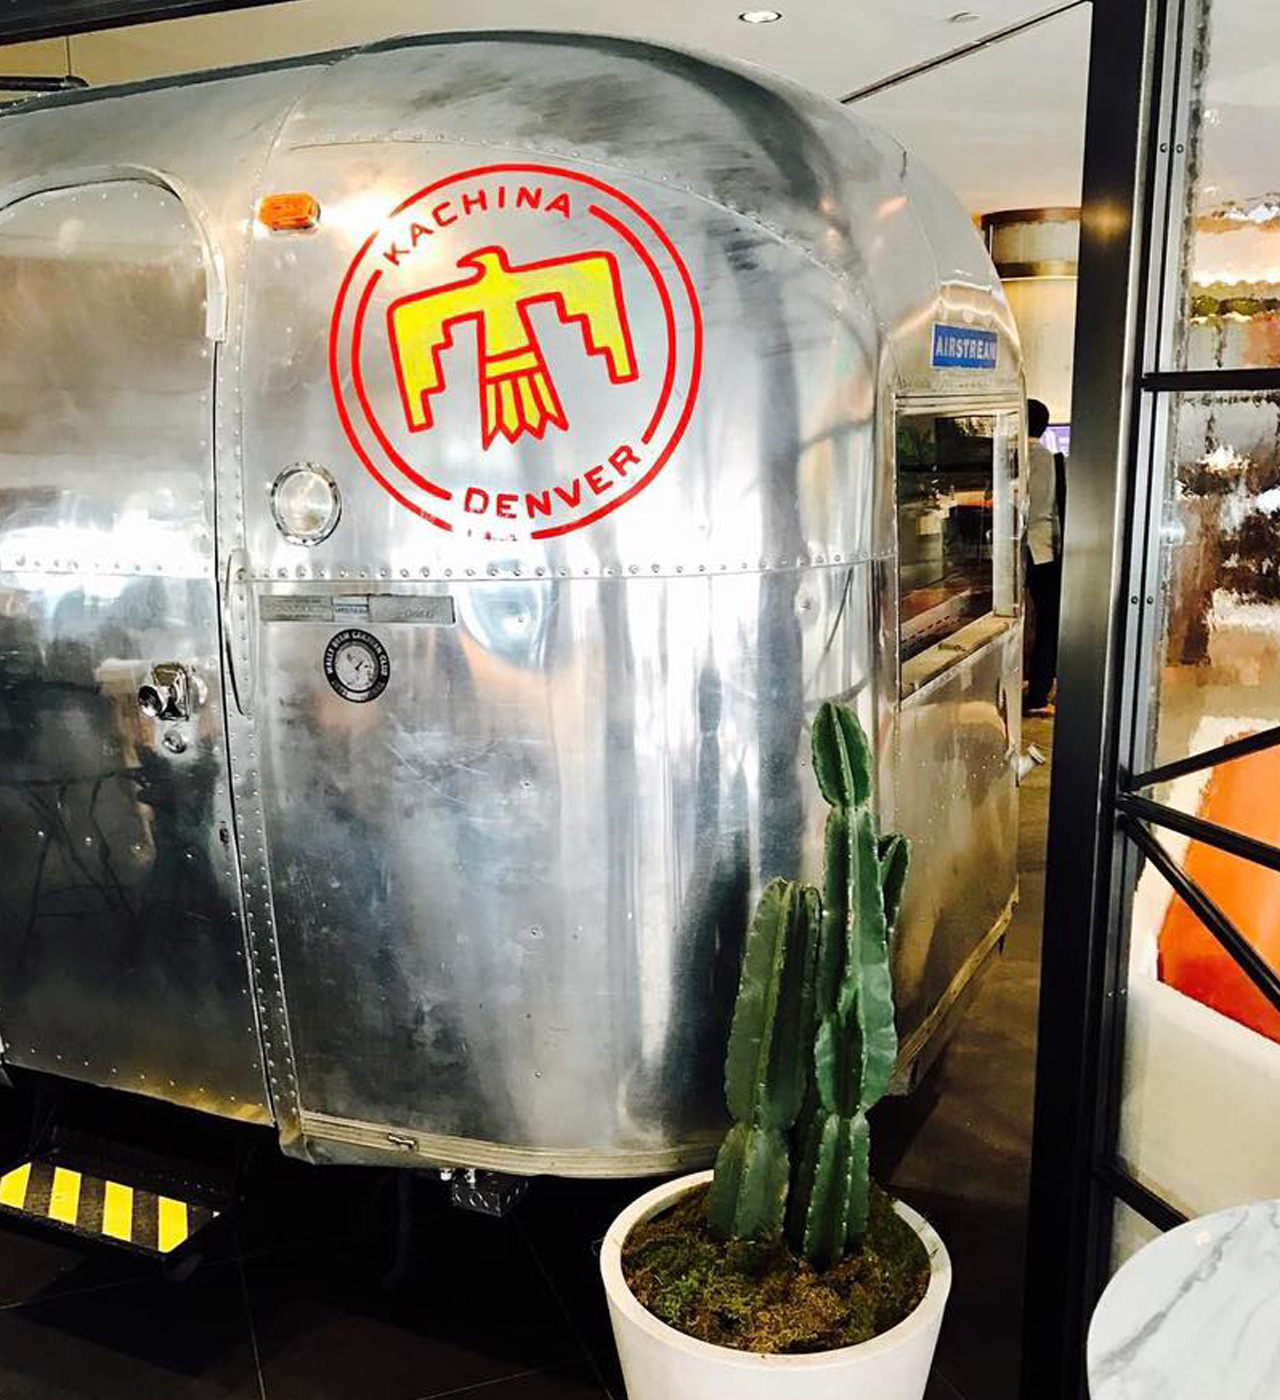 kachina-restaurant-southwestern-denver-airstream-thunderbird-trailer